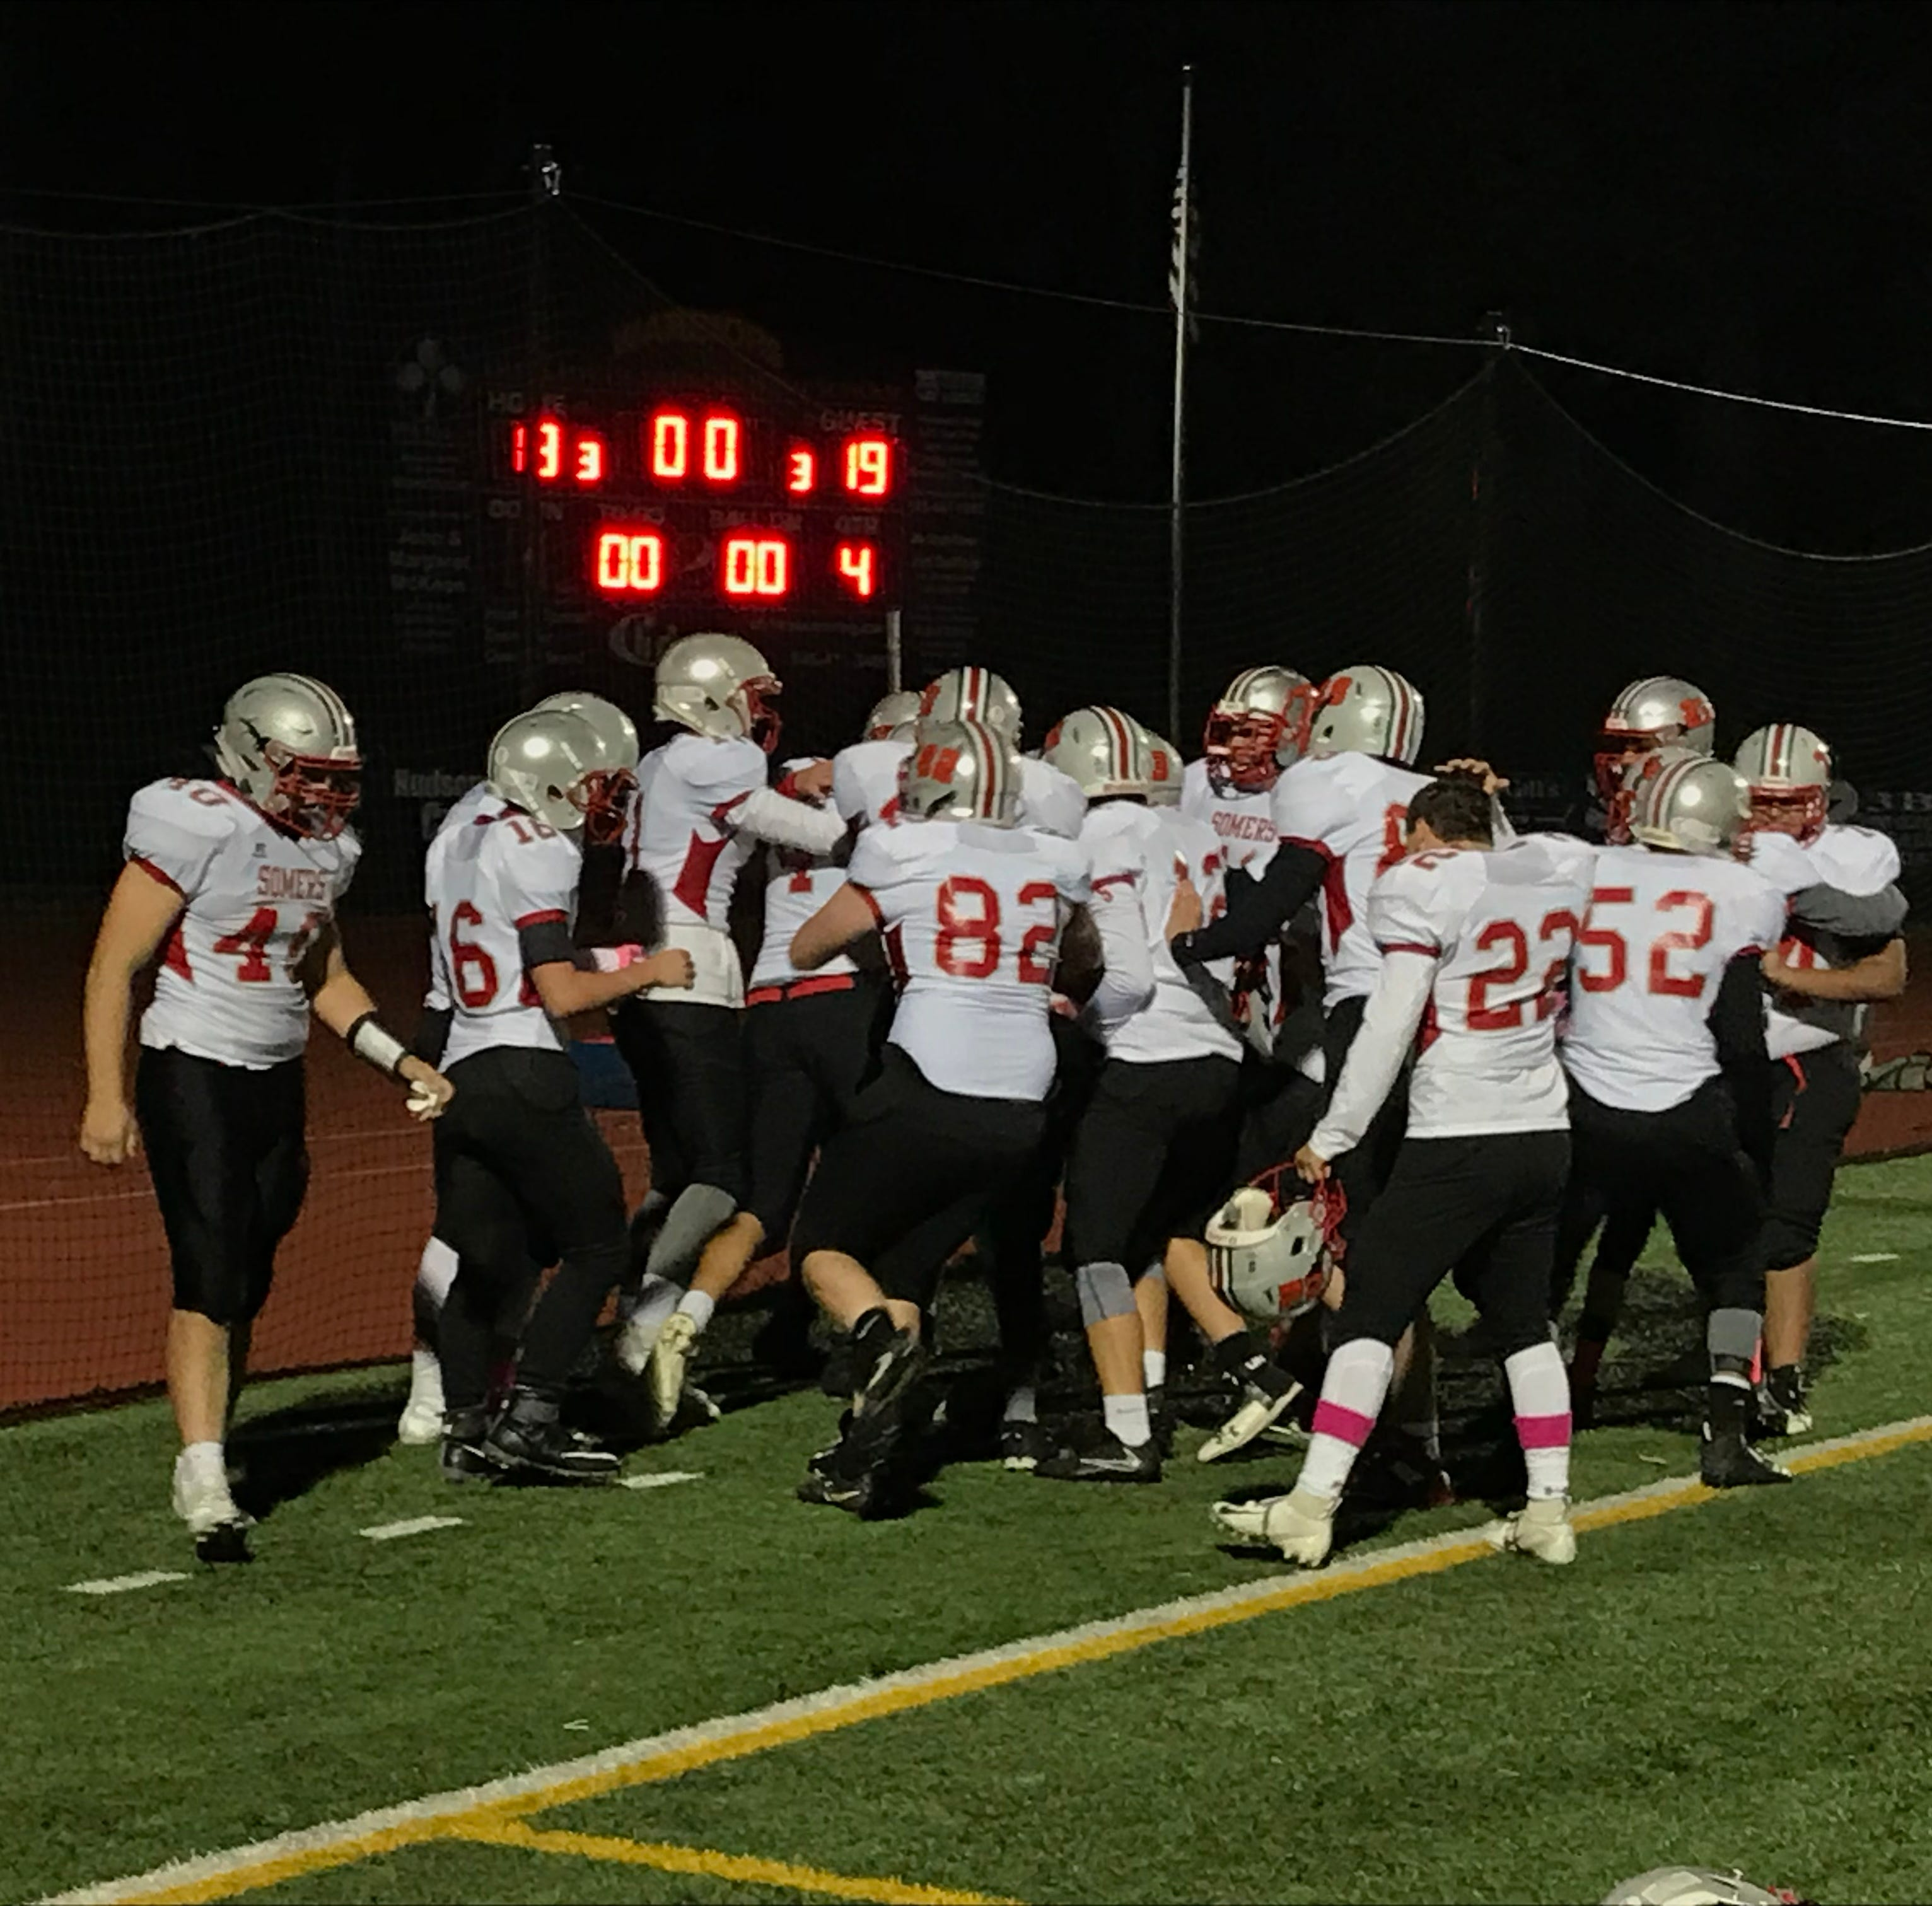 Somers beats Lourdes in the final seconds of Class A quarterfinals